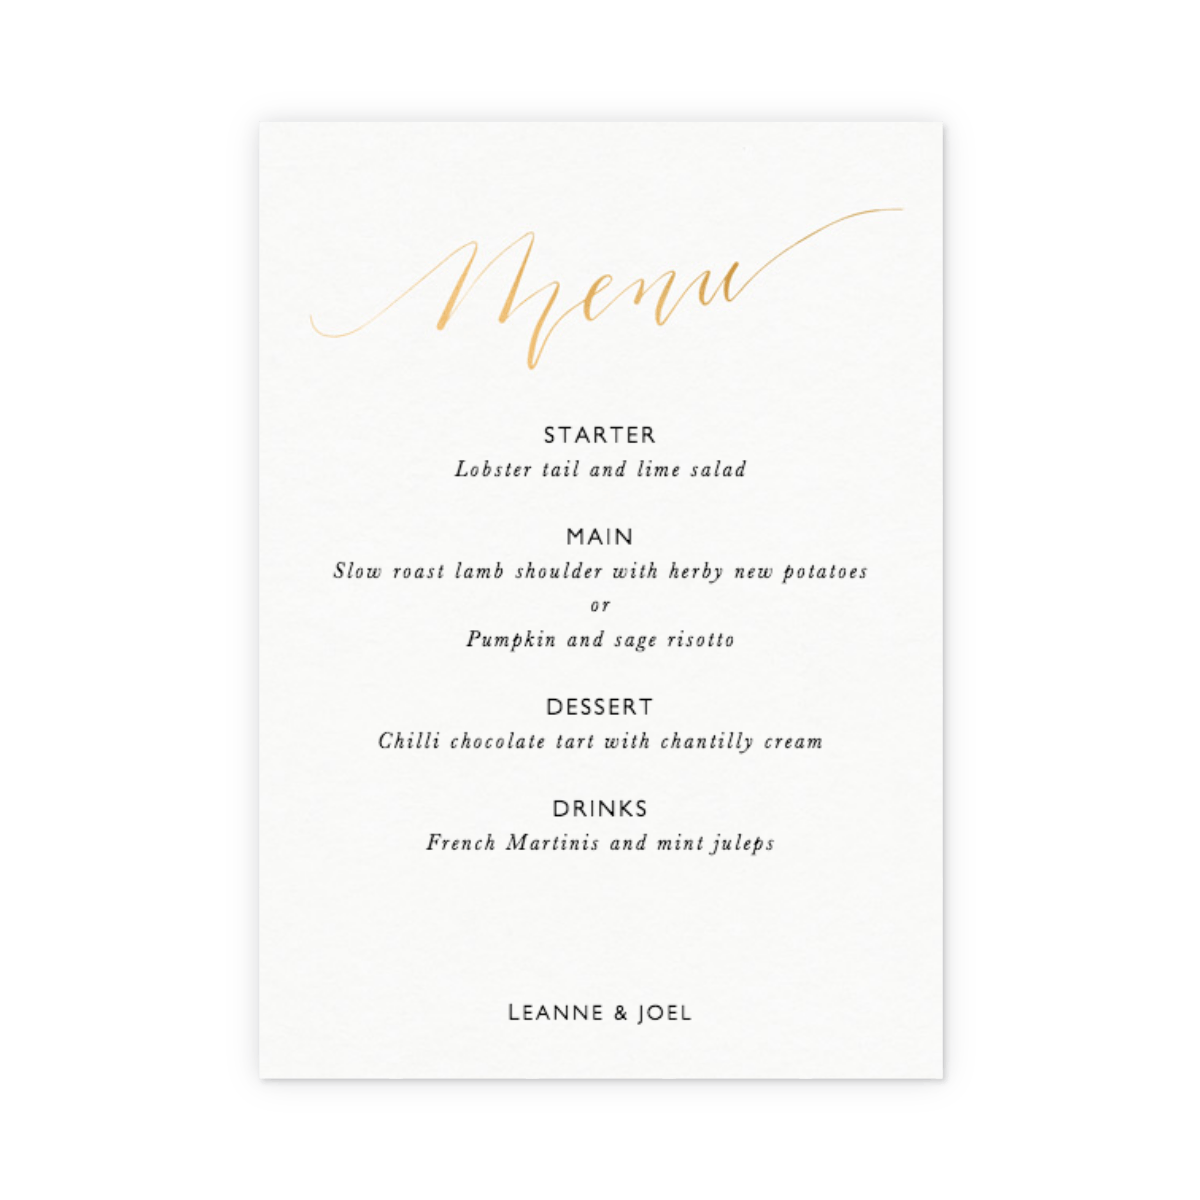 Https%3a%2f%2fwww.papier.com%2fproduct image%2f69323%2f4%2fcalligraphy menu 16372 front 1552910266.png?ixlib=rb 1.1